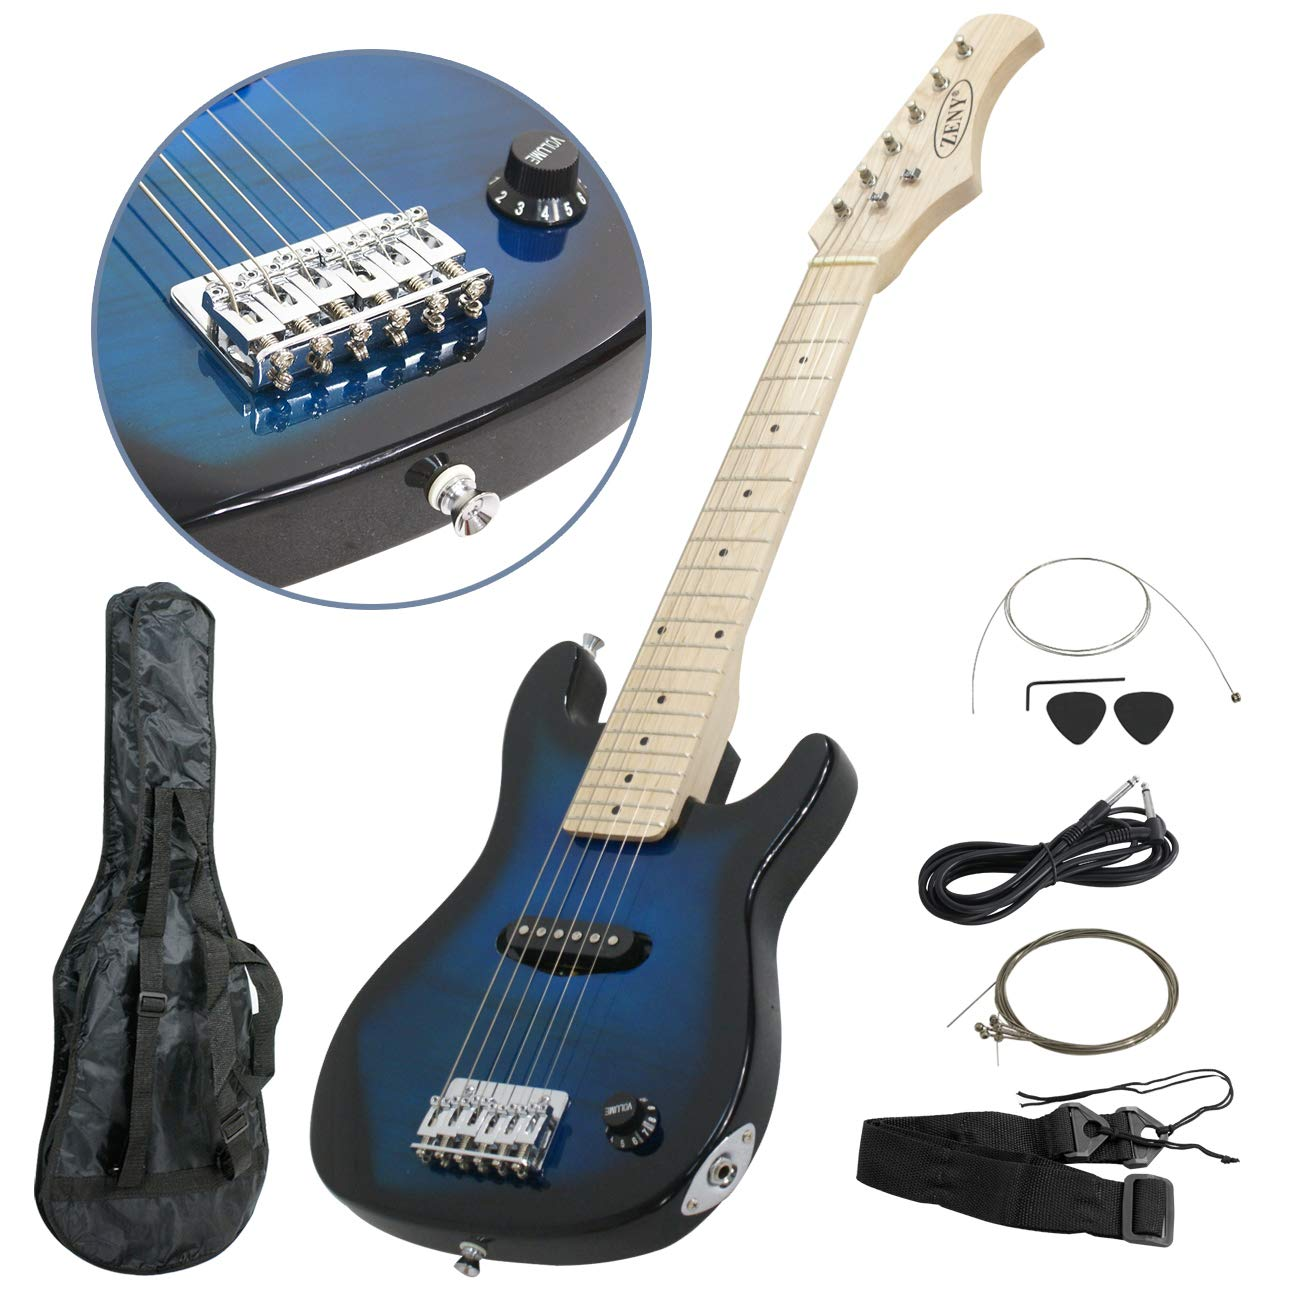 ZENY Blue 30'' Inch Kids Electric Guitar With Cable Cord shoulder strap New (Blue) by ZENY